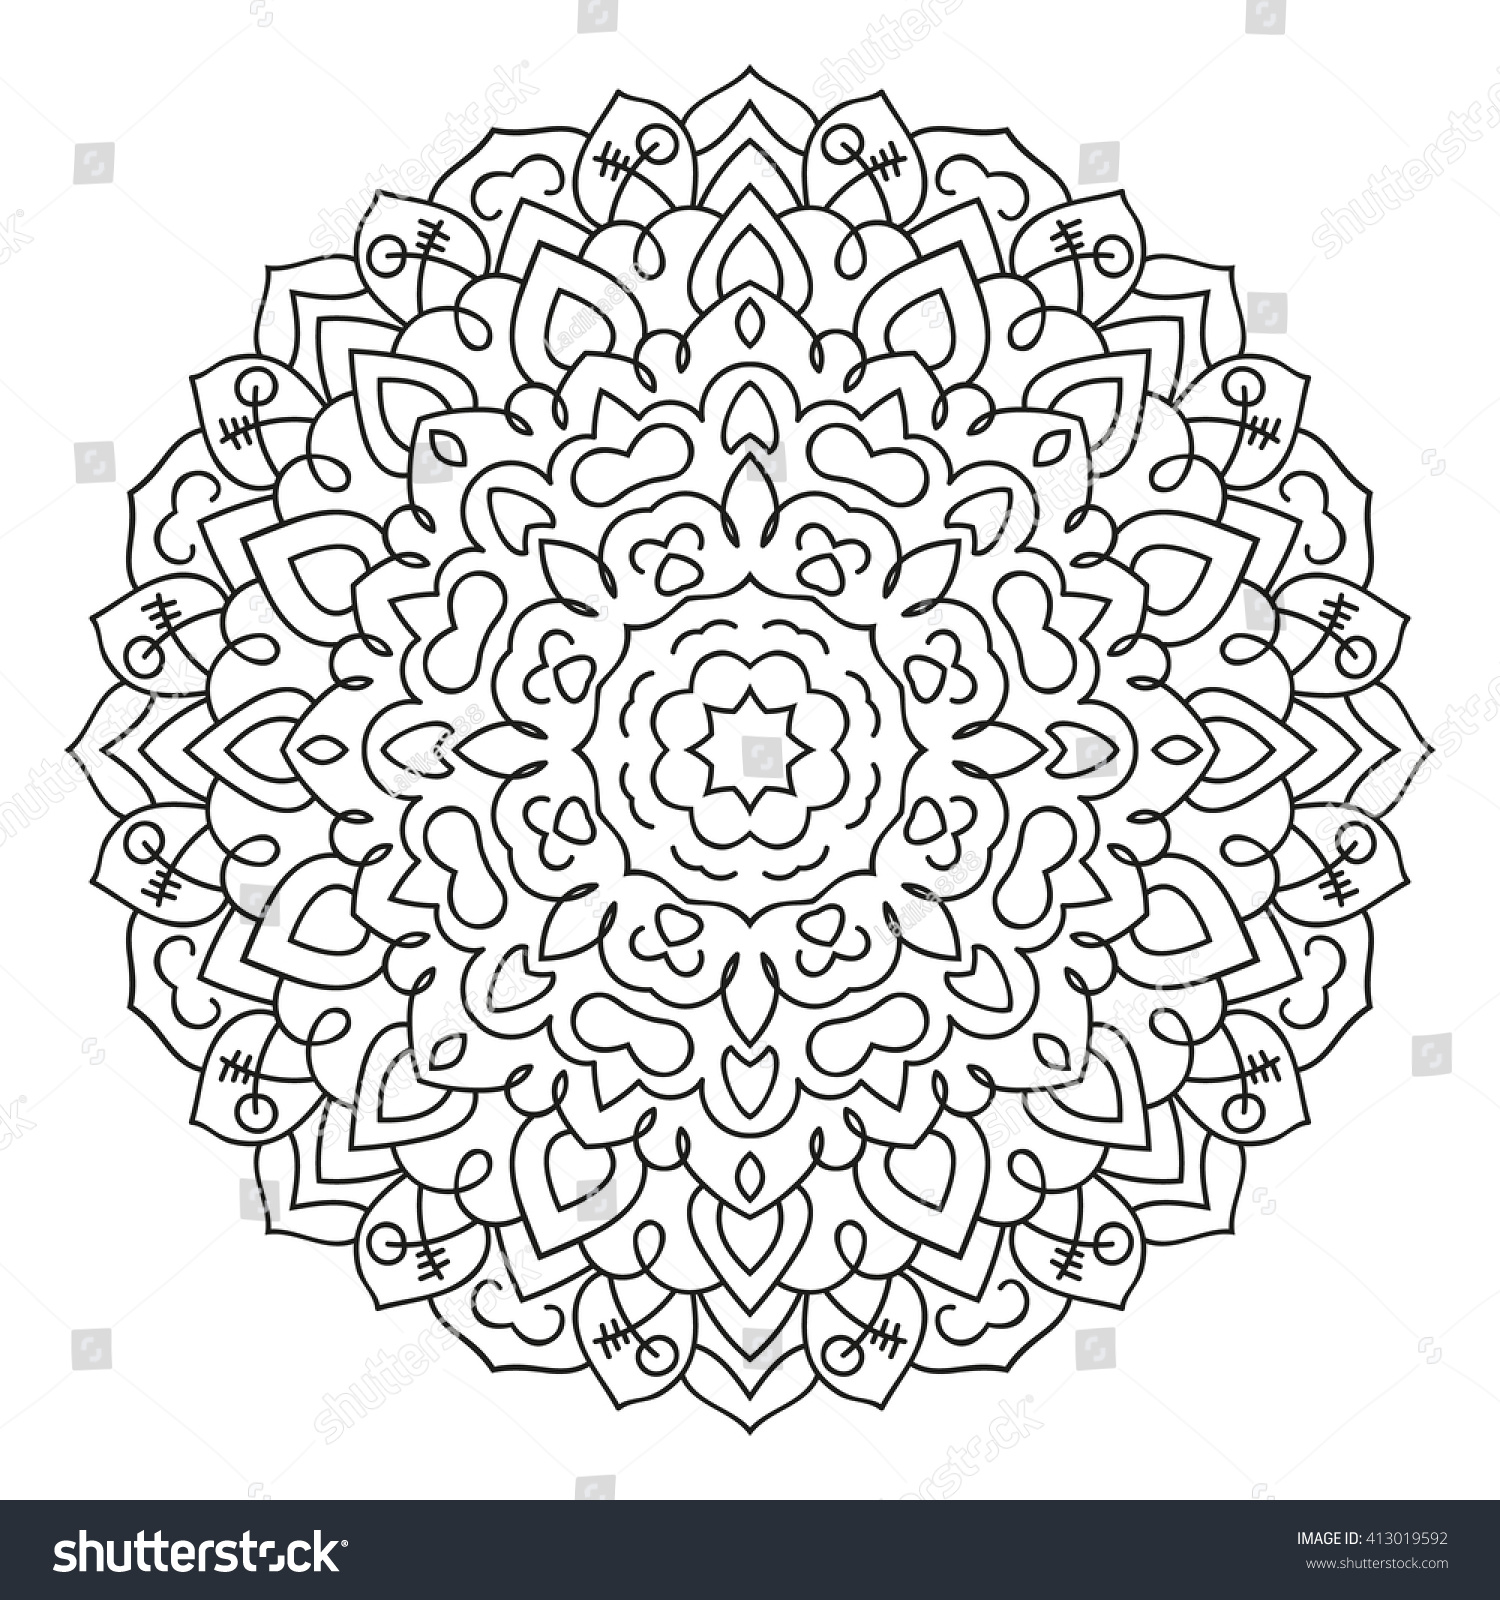 East Circular Pattern Mandala Coloring Page Stock Photo (Photo ...